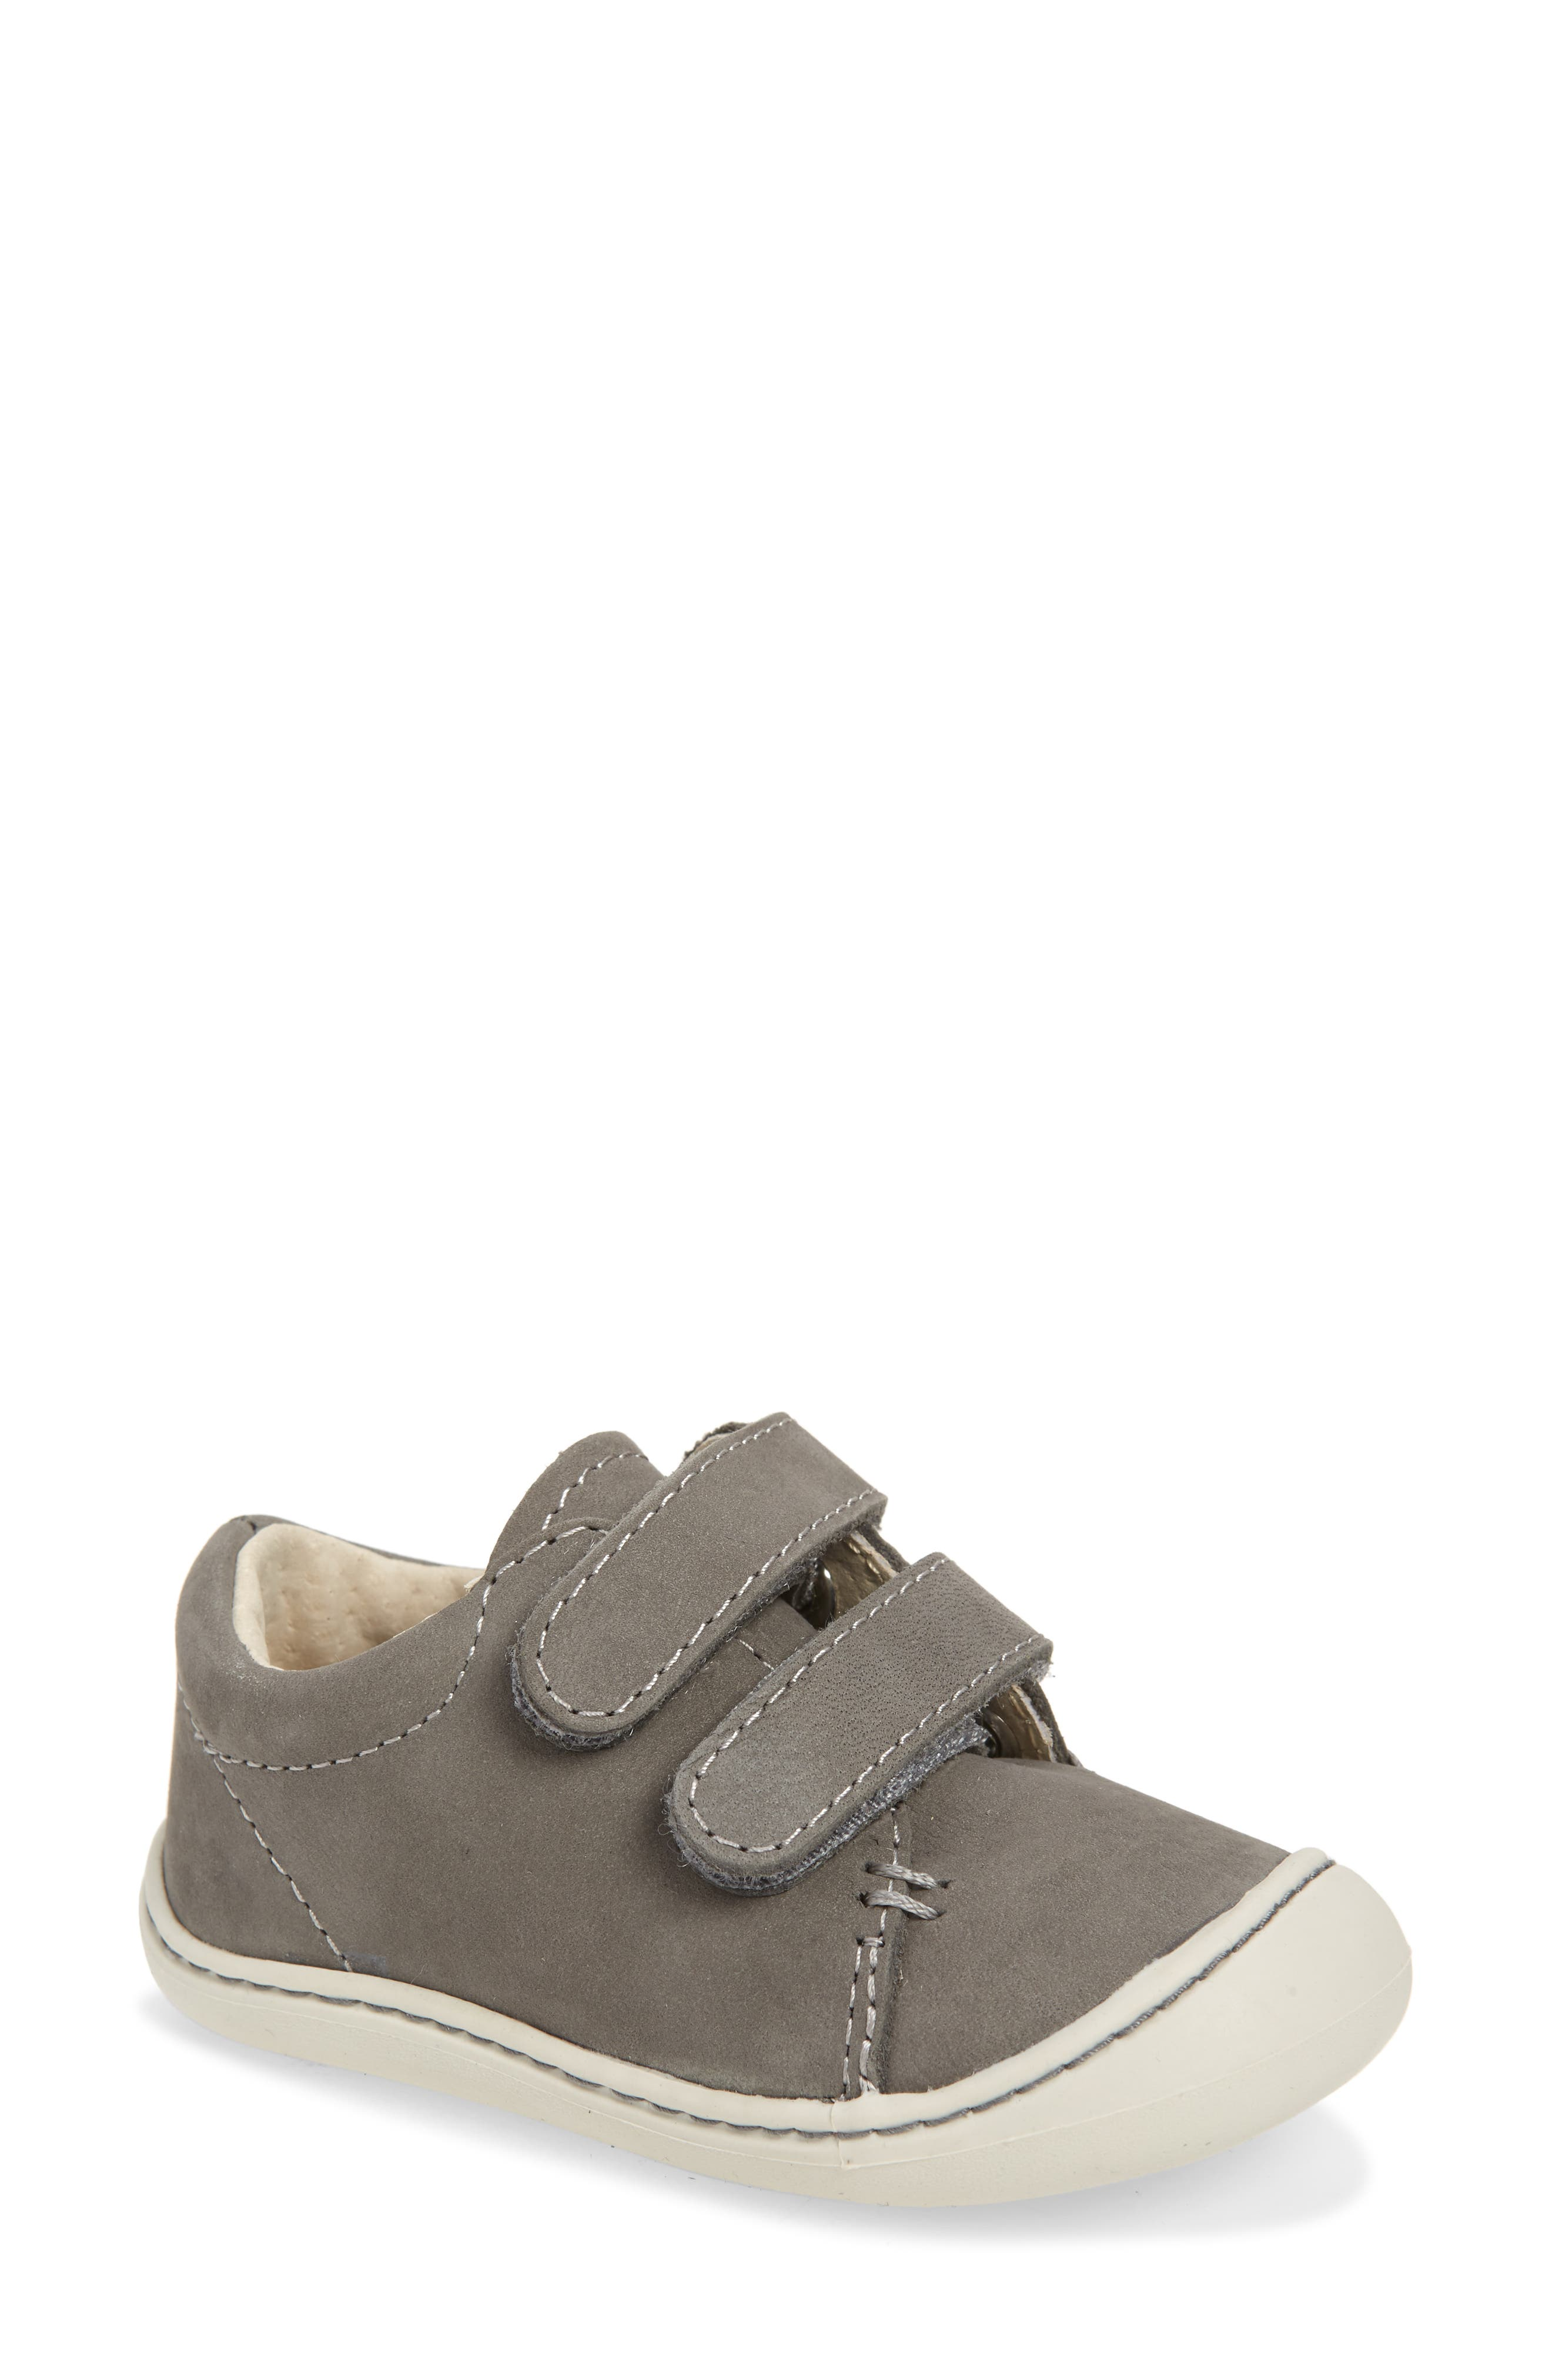 Two easy-on bridge straps make it a cinch to secure this super-comfortable leather sneaker to even the littlest of feet. The wide, flat base helps promote balance and confident early steps for beginning walkers. Style Name: Footmates Henry Sneaker (Baby, Walker & Toddler). Style Number: 5890358. Available in stores.